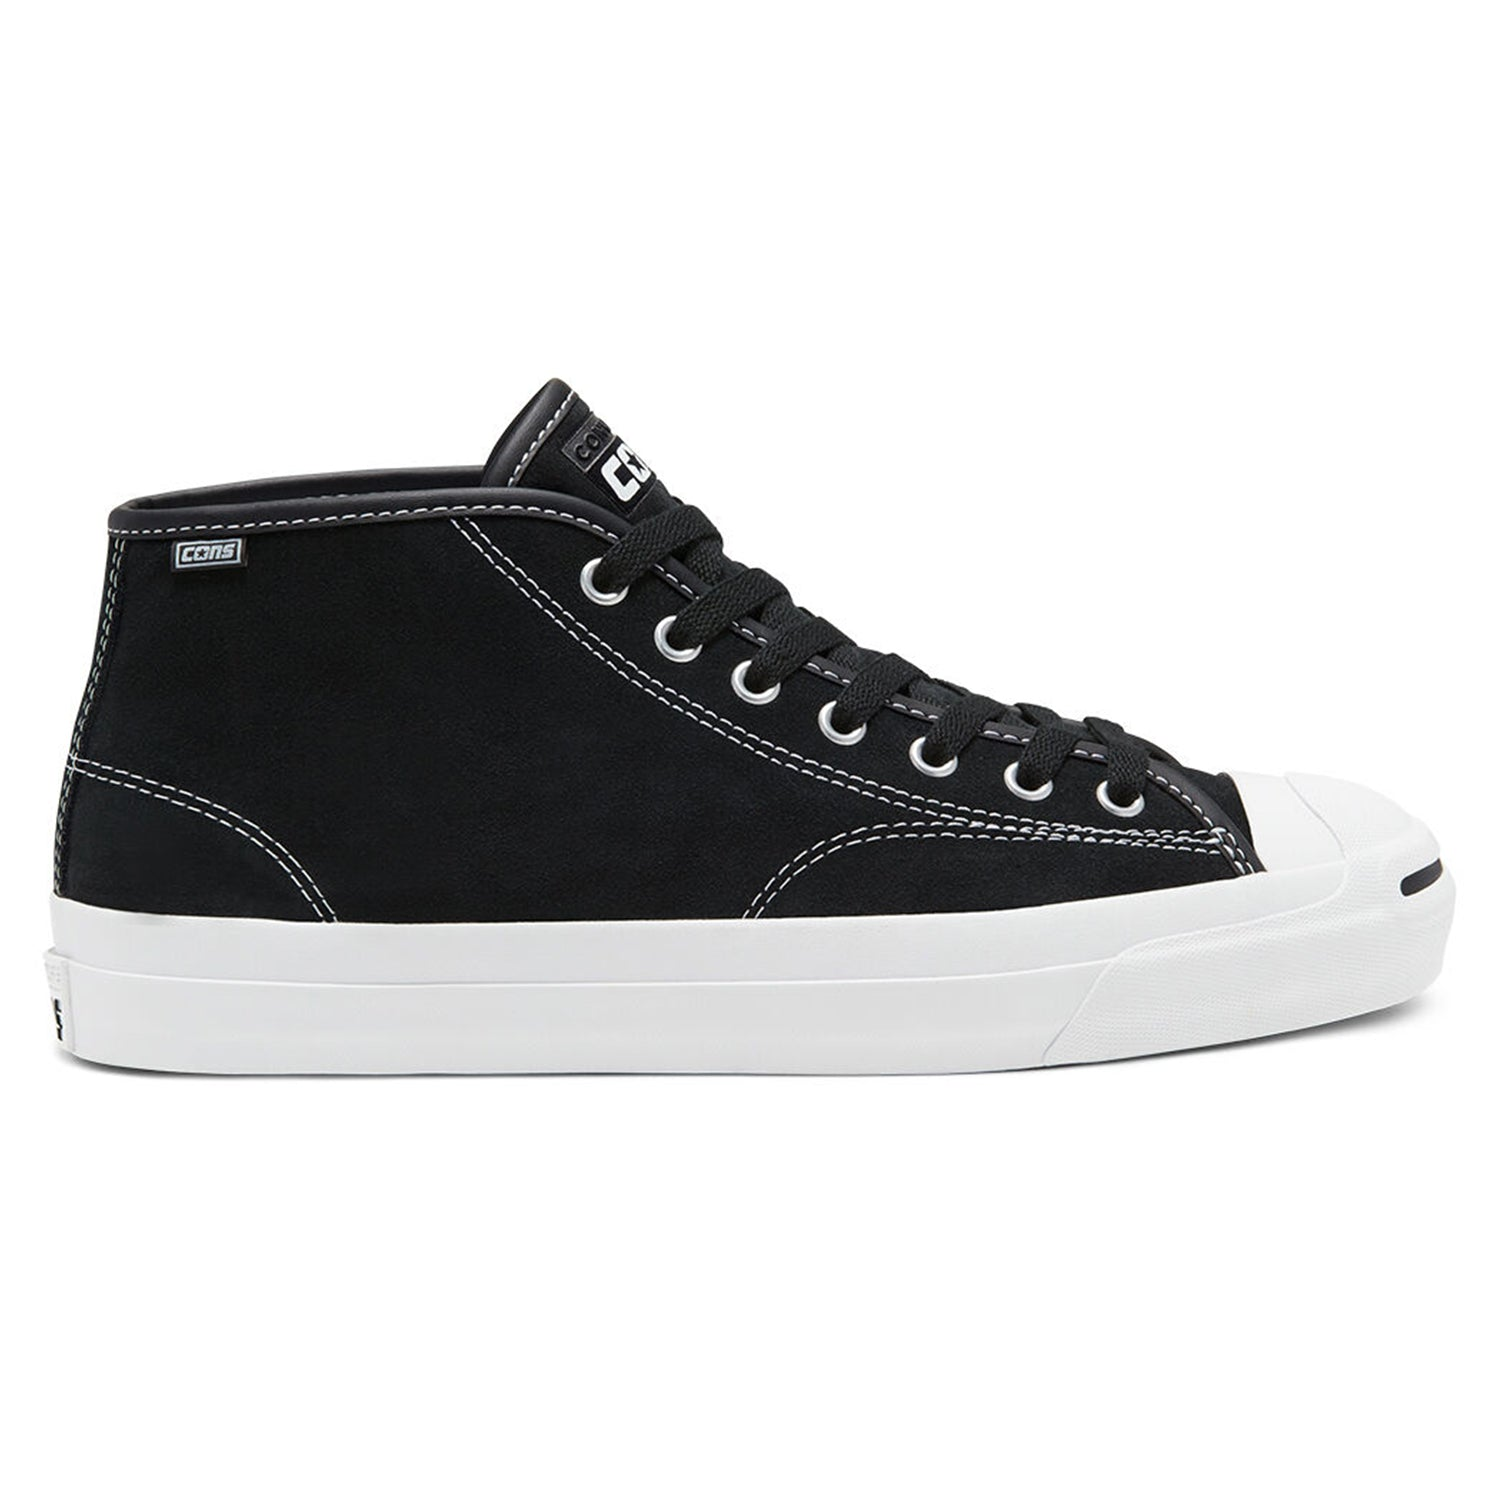 Converse CONS Jack Purcell JP Pro Mid Black/White